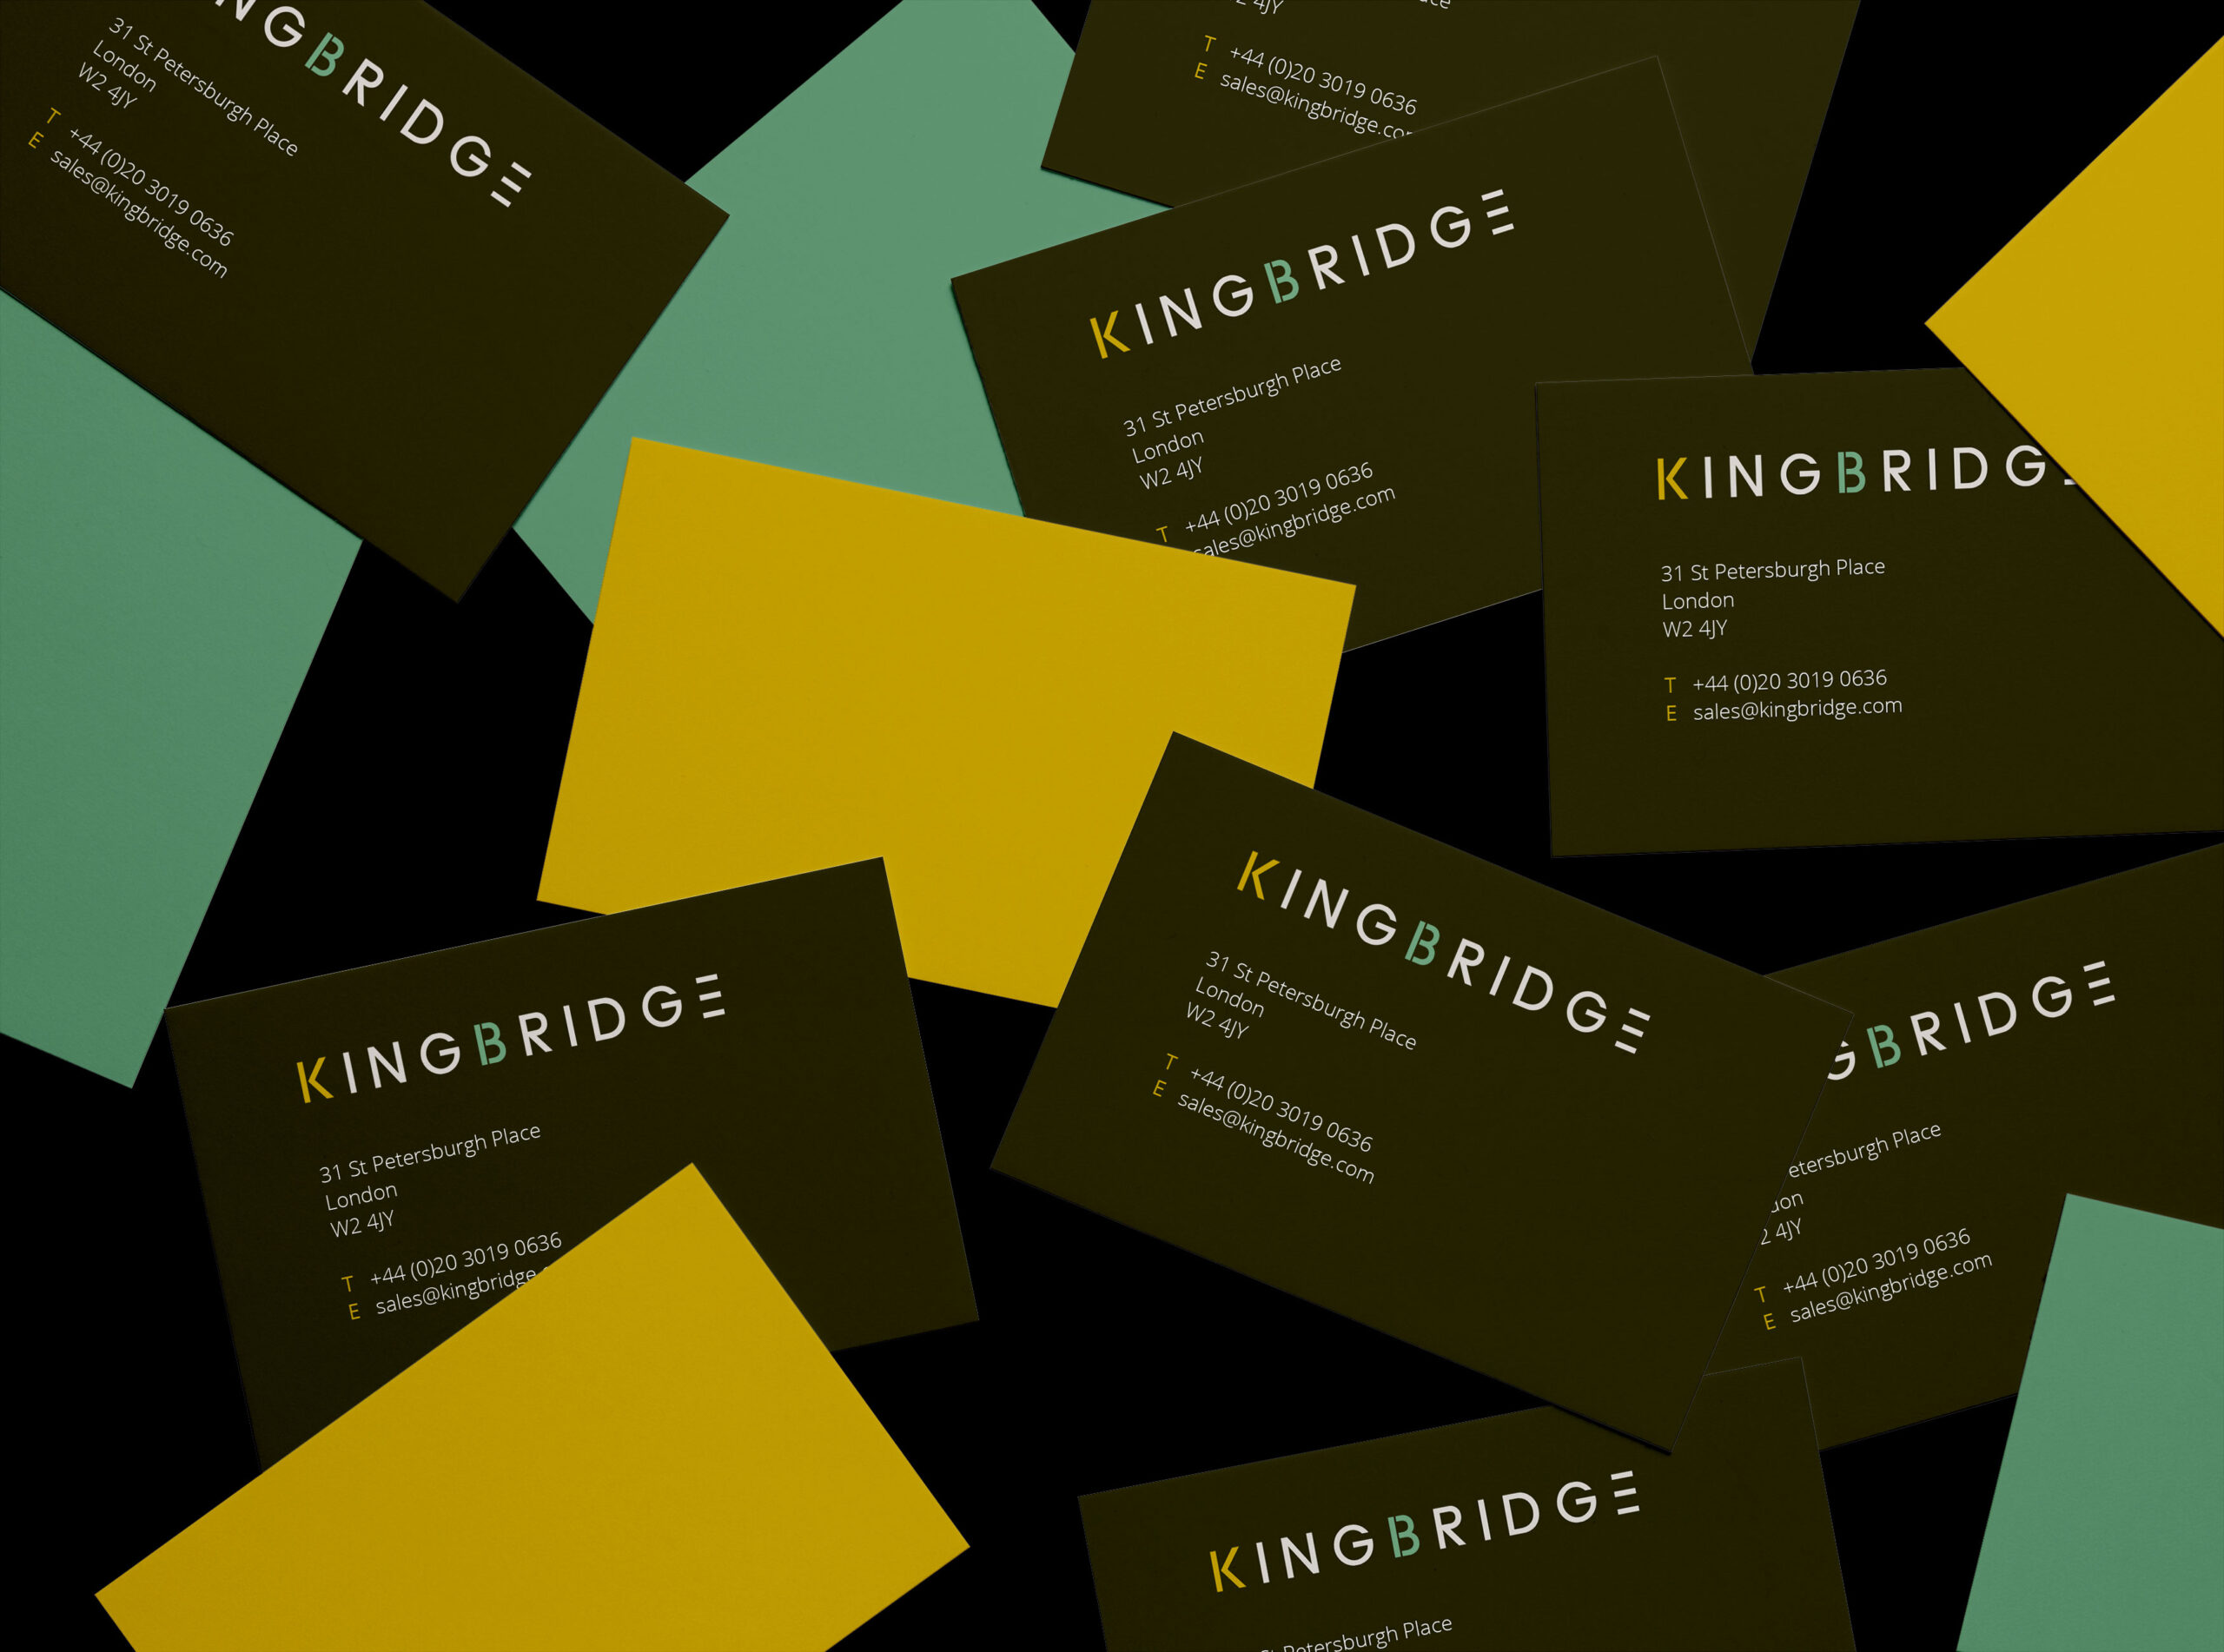 property business cards